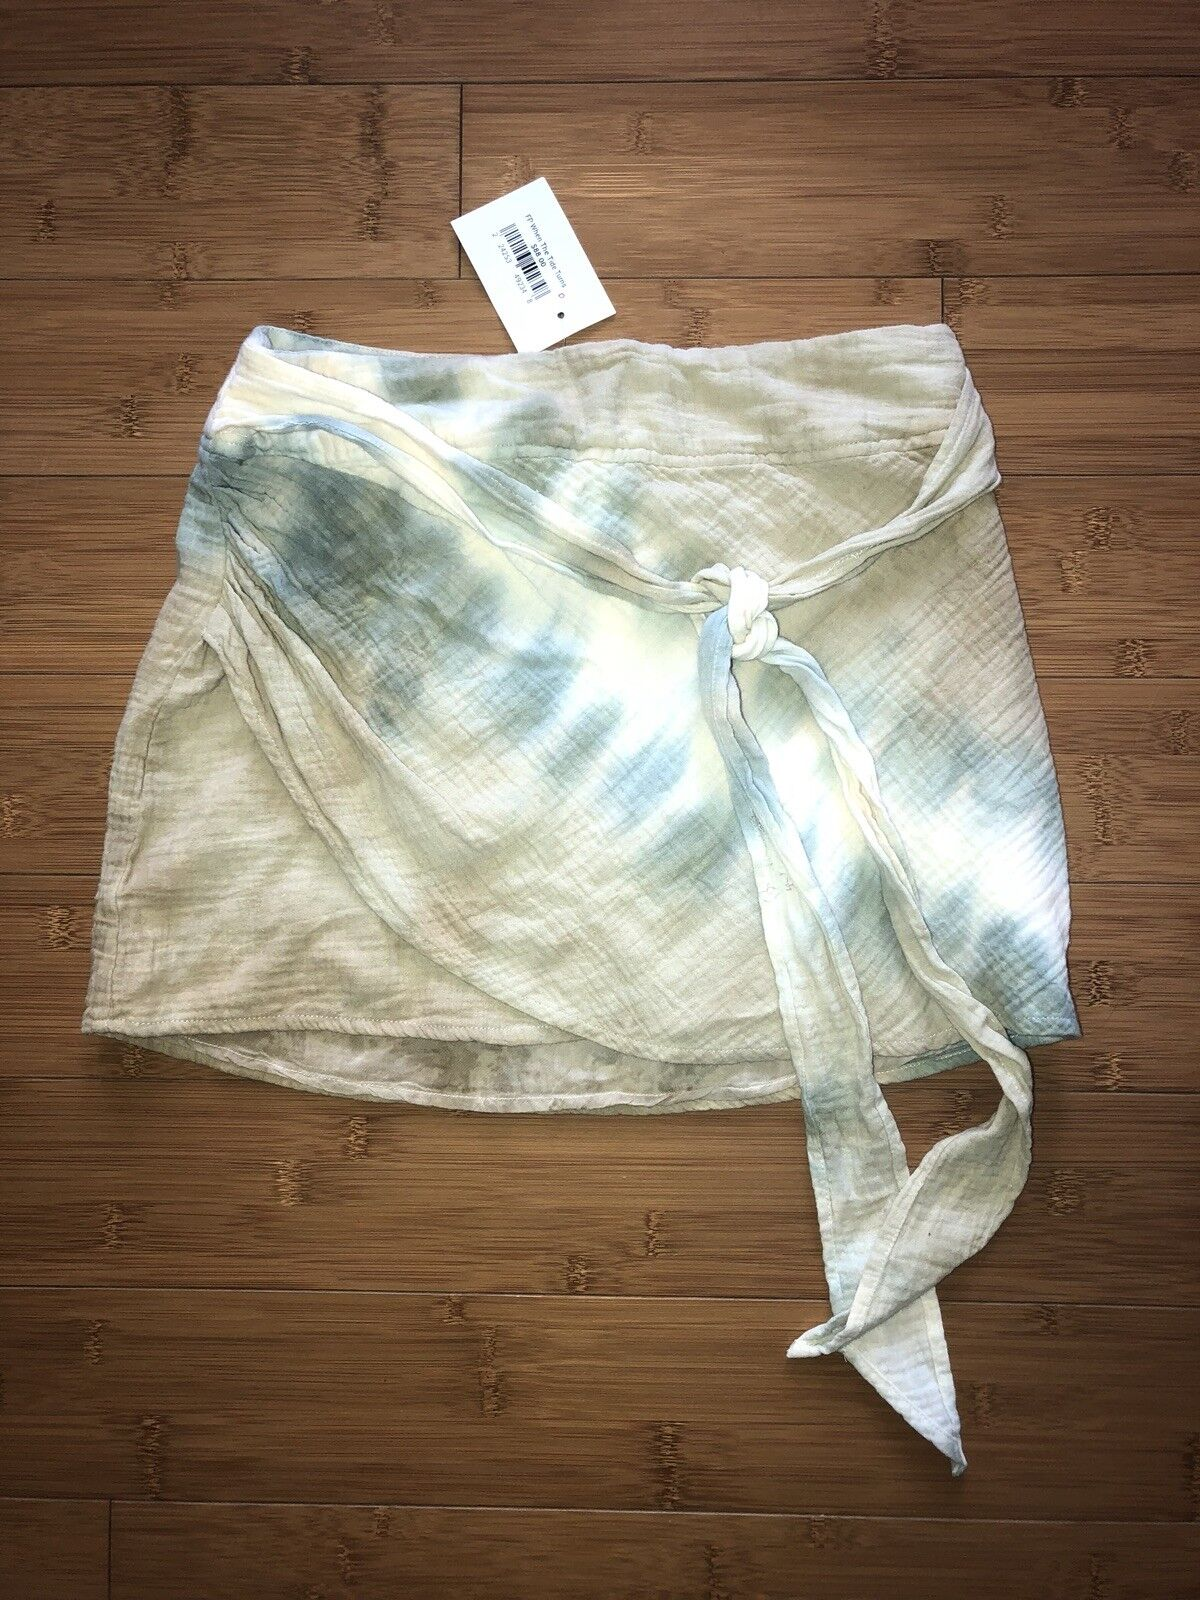 Free People 4839 Womens Green Tie-Dye Quilted Micro-Mini A-Line Skirt 0